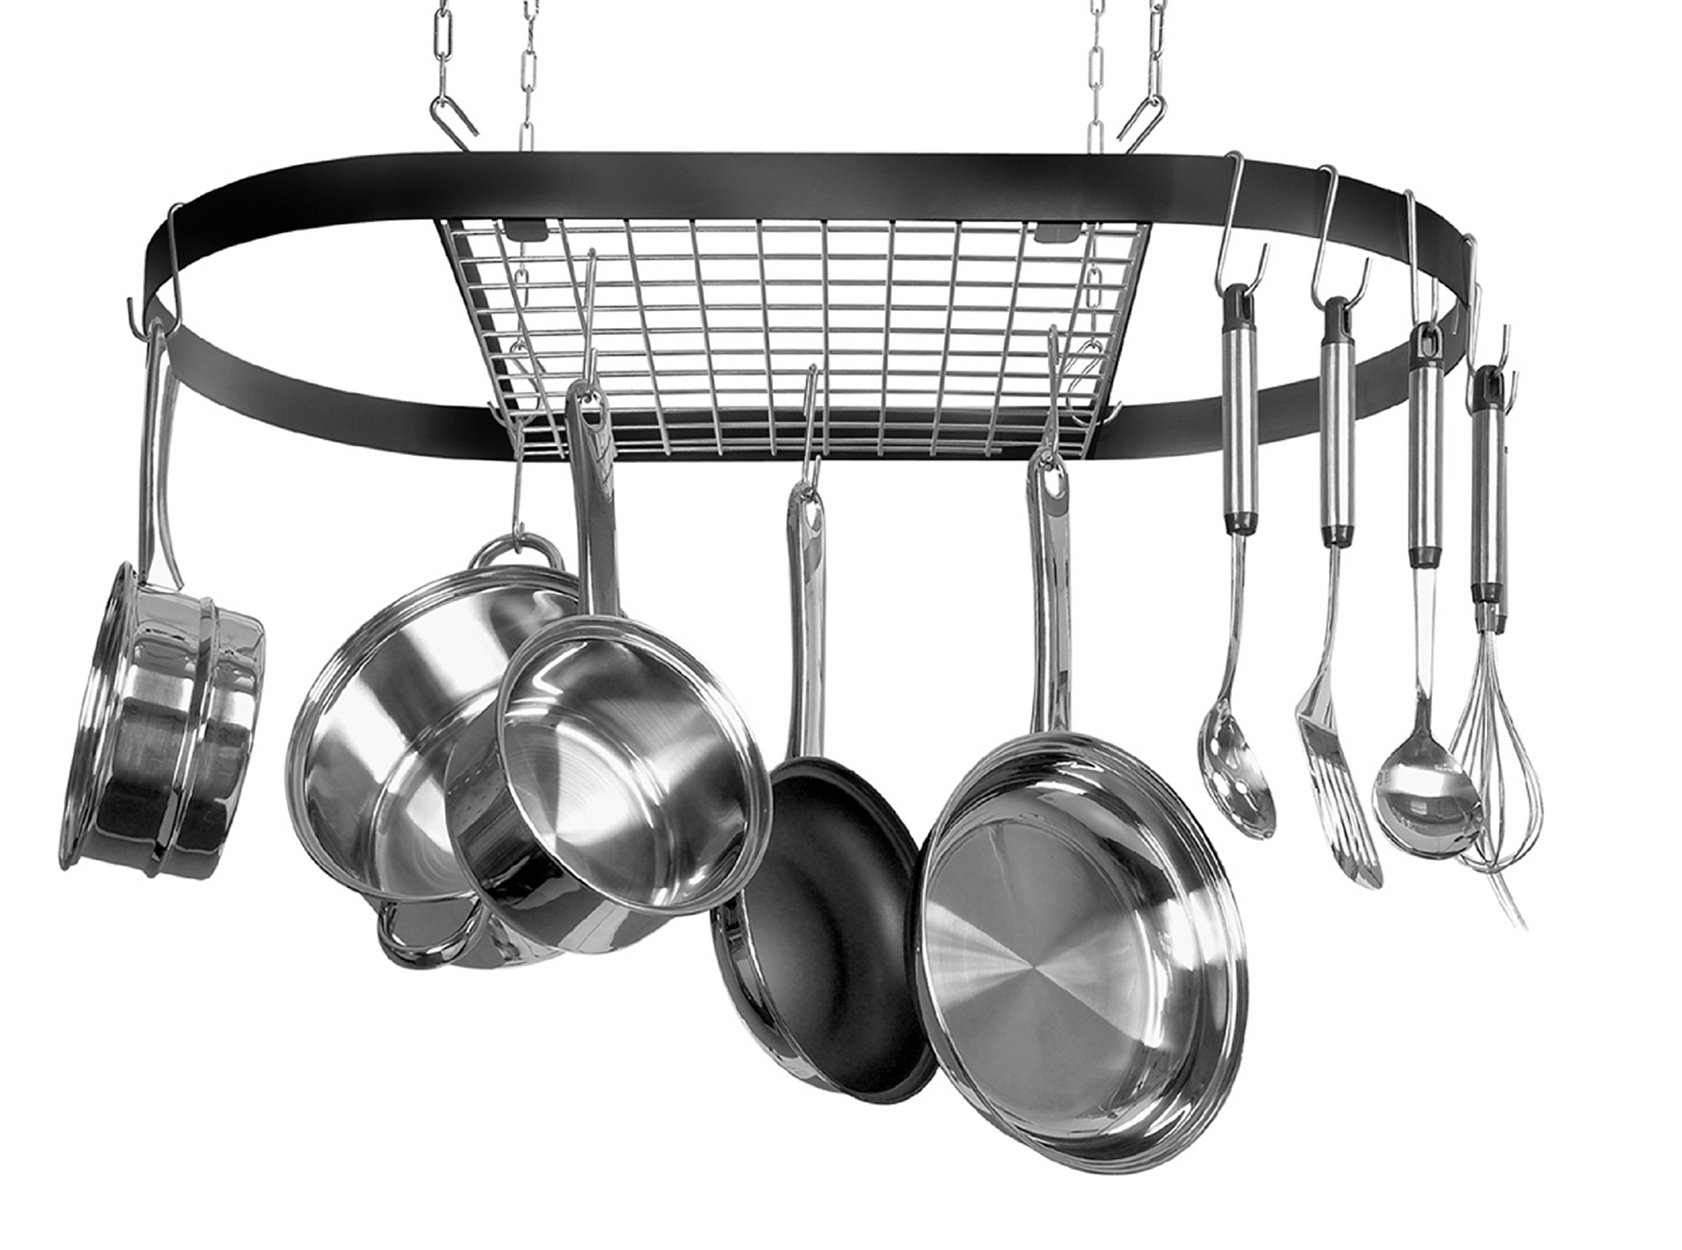 Kinetic Pot and Pan Rack with Ceiling Hooks - Premium Oval Mounted Oragnizer Rack with Multi Purpose Kitchen Organization and Storage for Home, Restaurant, Cookware, Utensils (Hanging Black) by Kinetic